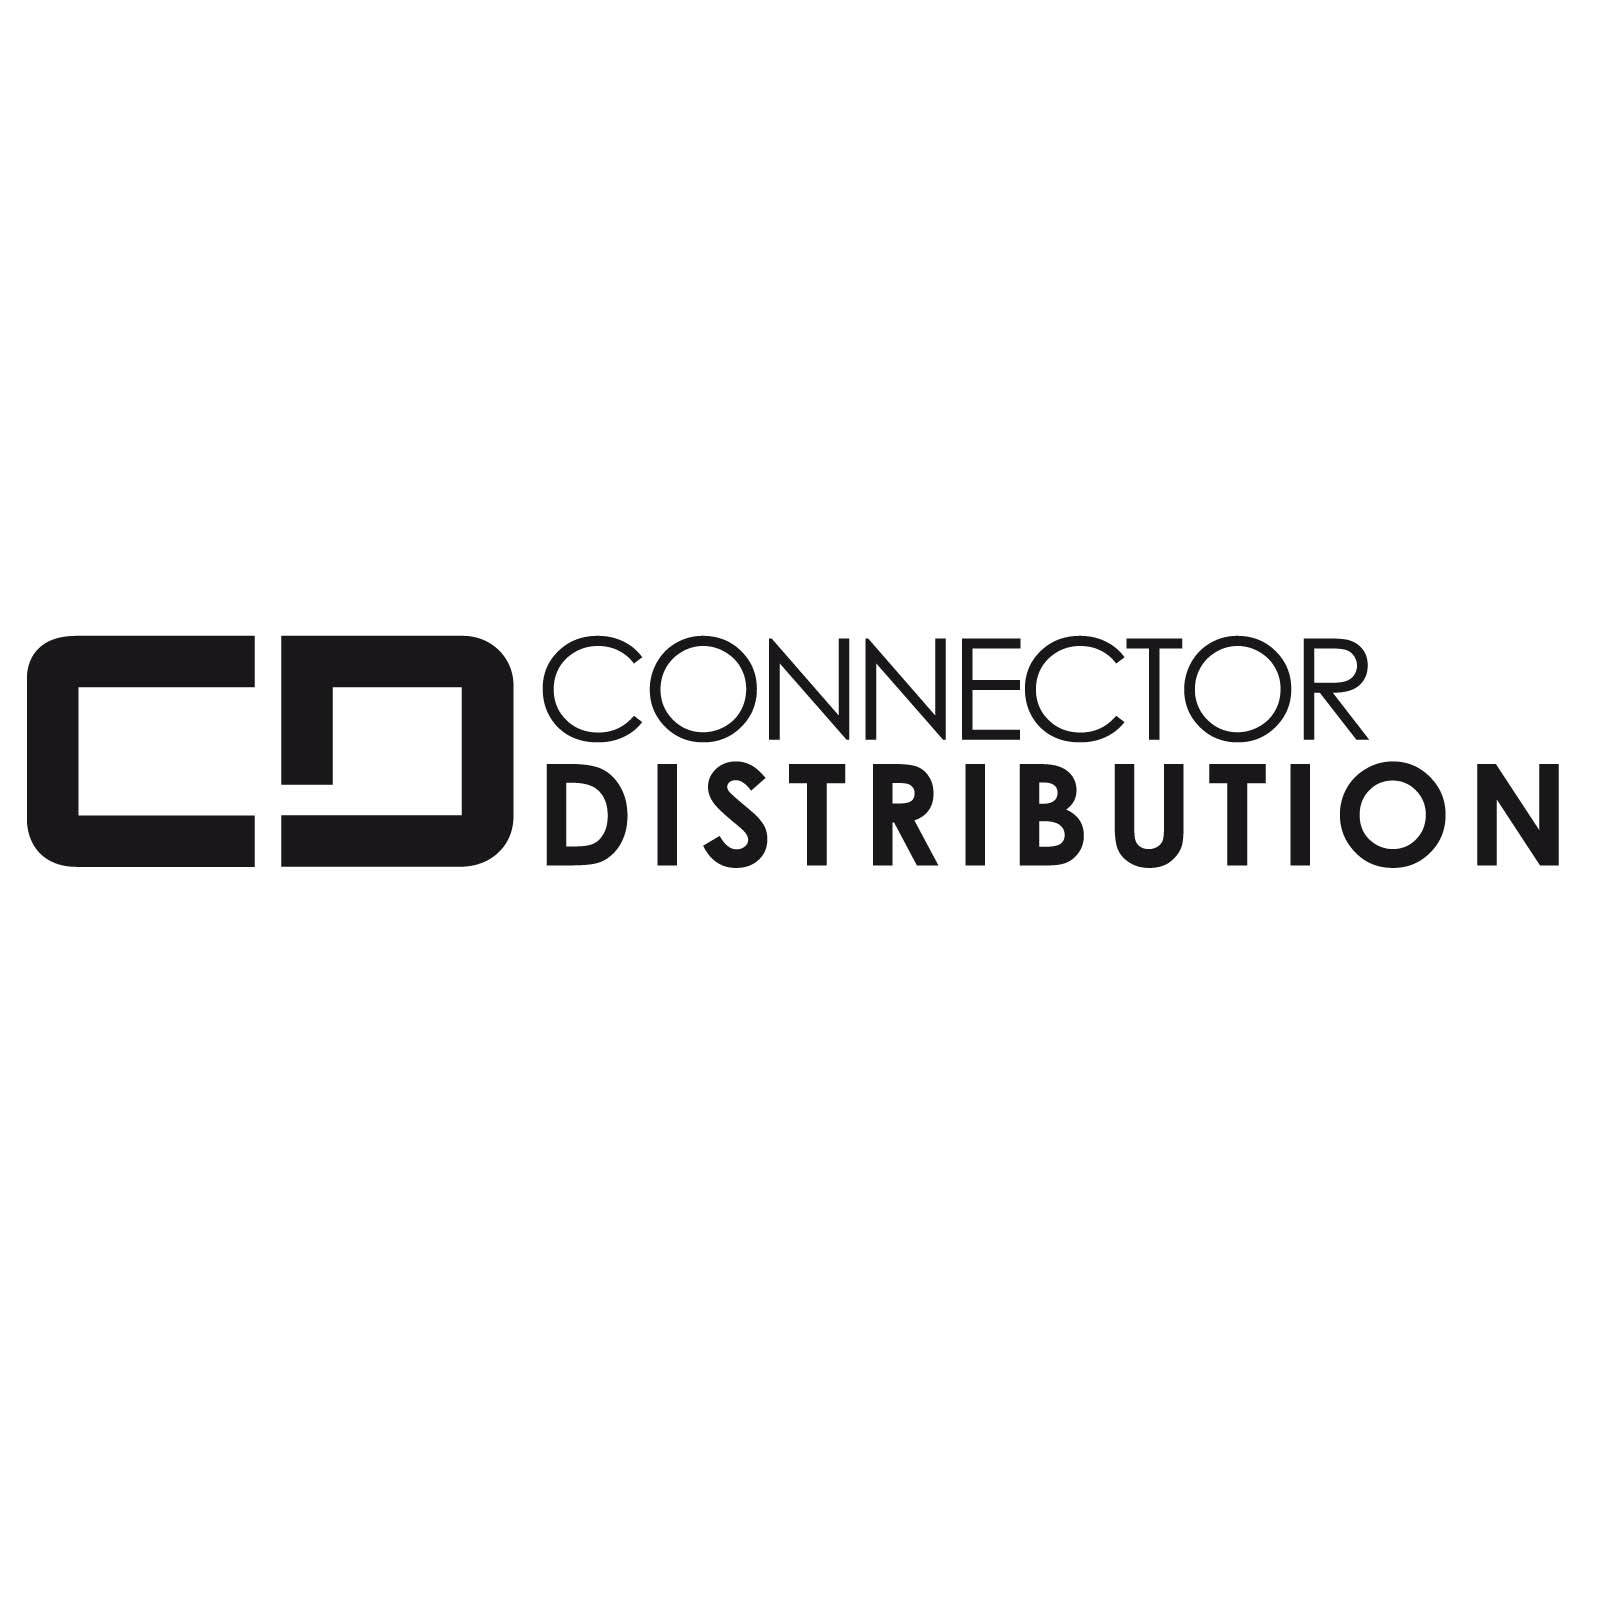 Connector Distribution